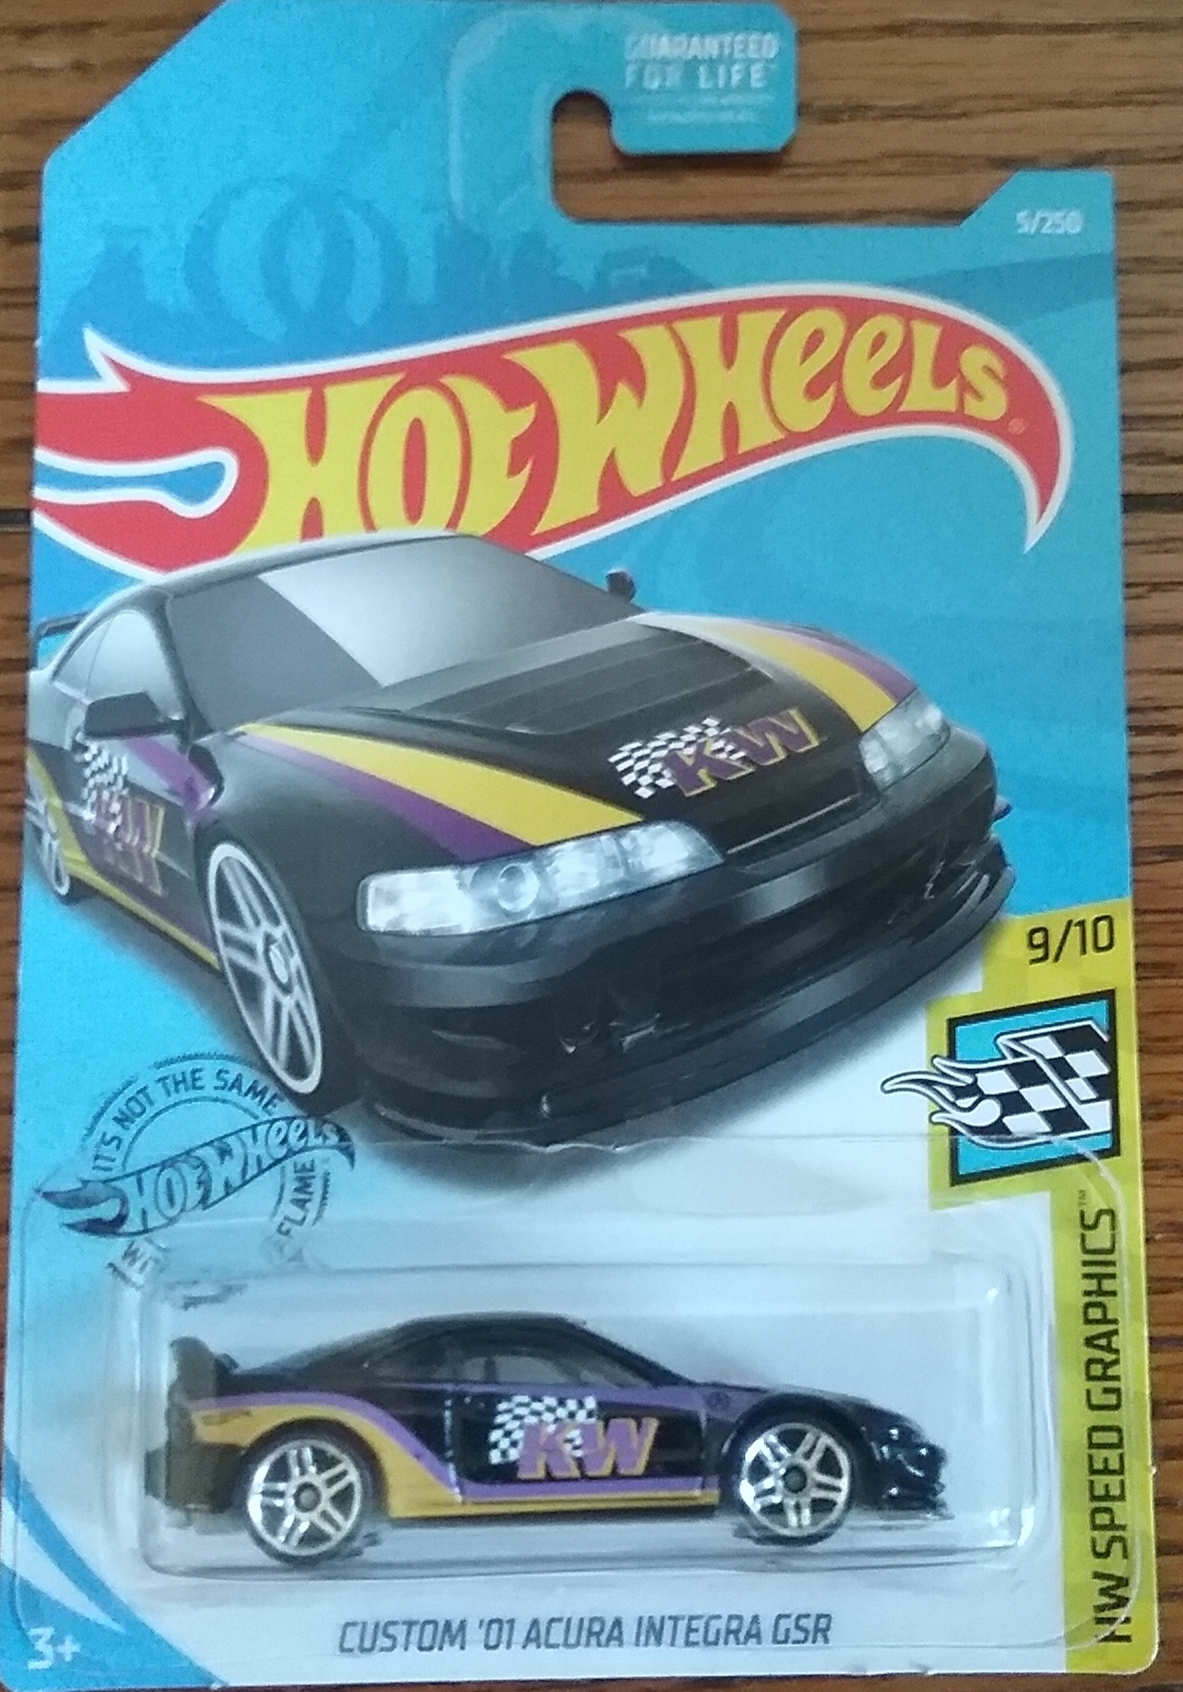 Custom 01 Acura Integra Gsr 5 Speed Graphics 2019 Hot Wheels